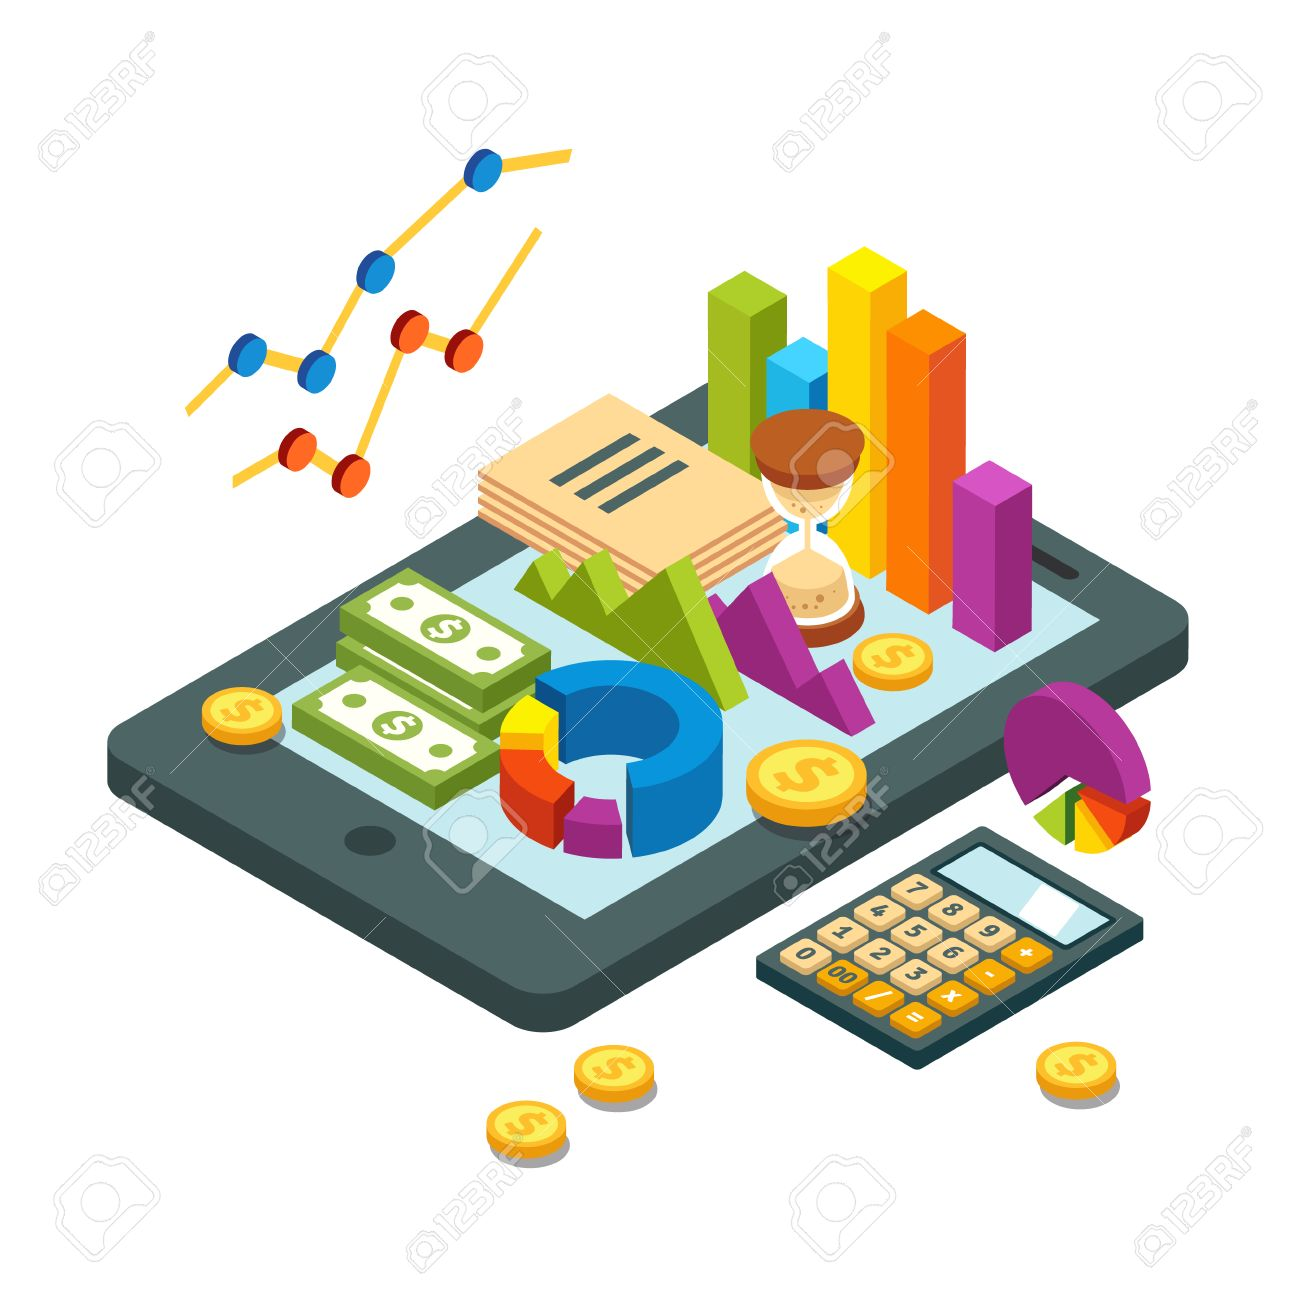 Modern business and analytics concept pie chart bar graphs modern business and analytics concept pie chart bar graphs money bills and coins ccuart Image collections